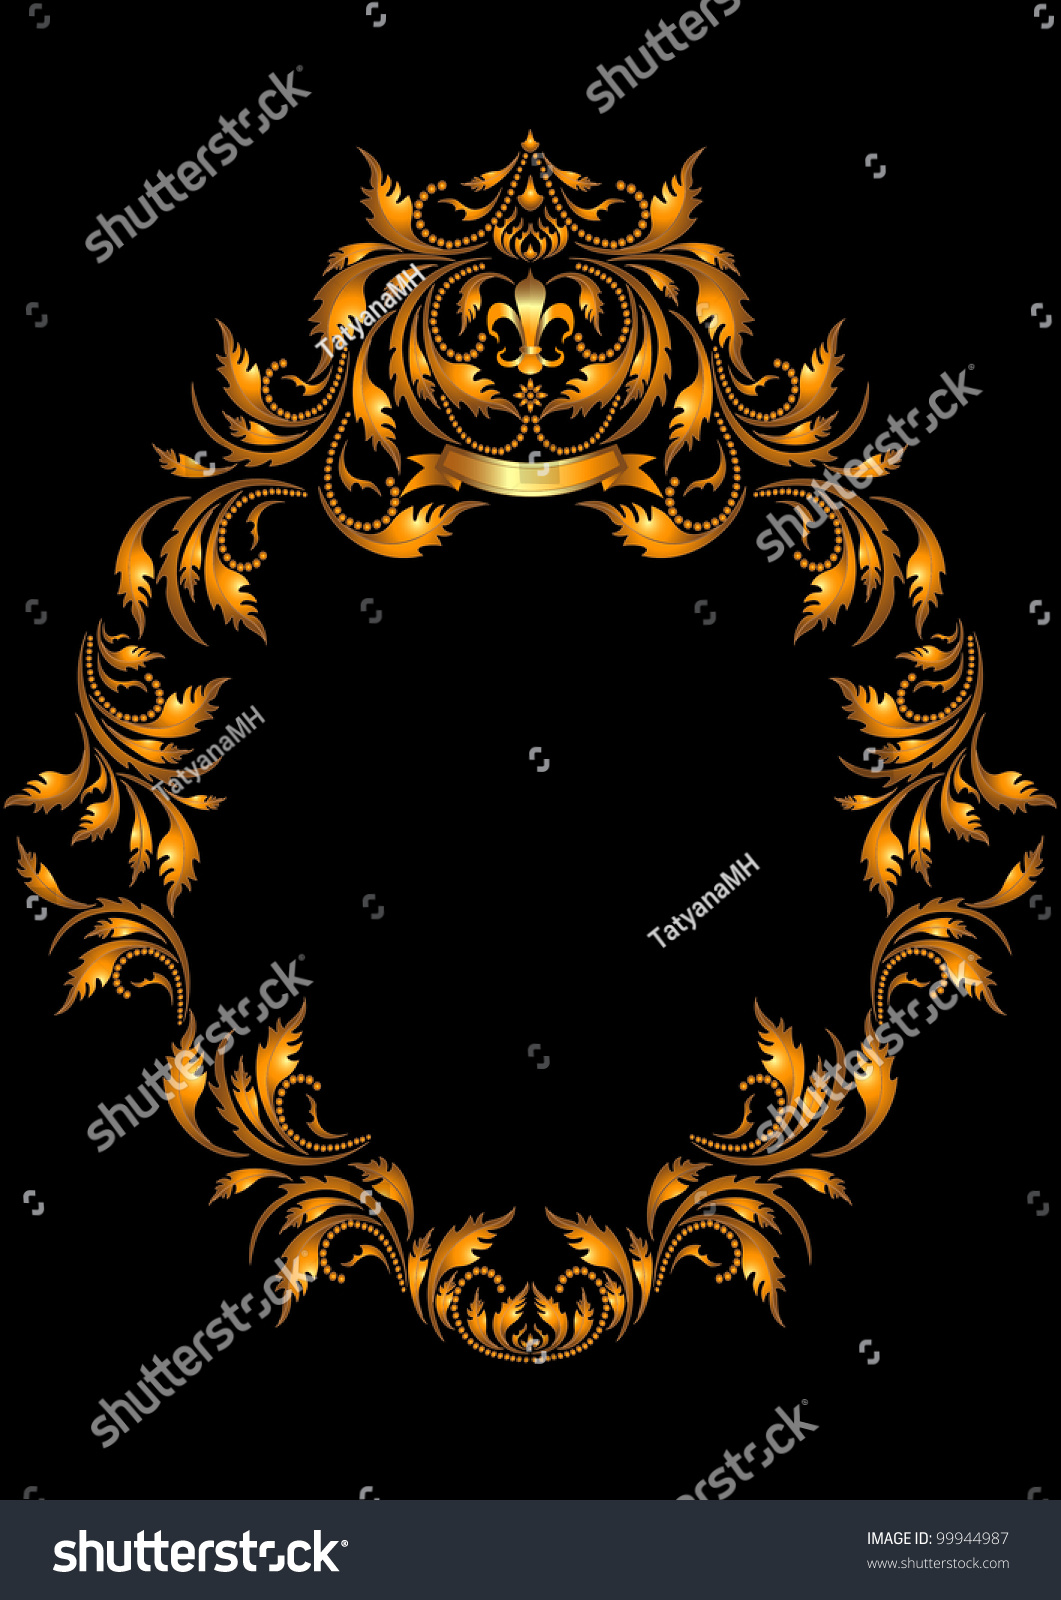 Gold Oval Frame Gothic Style On Stock Illustration 99944987 ...